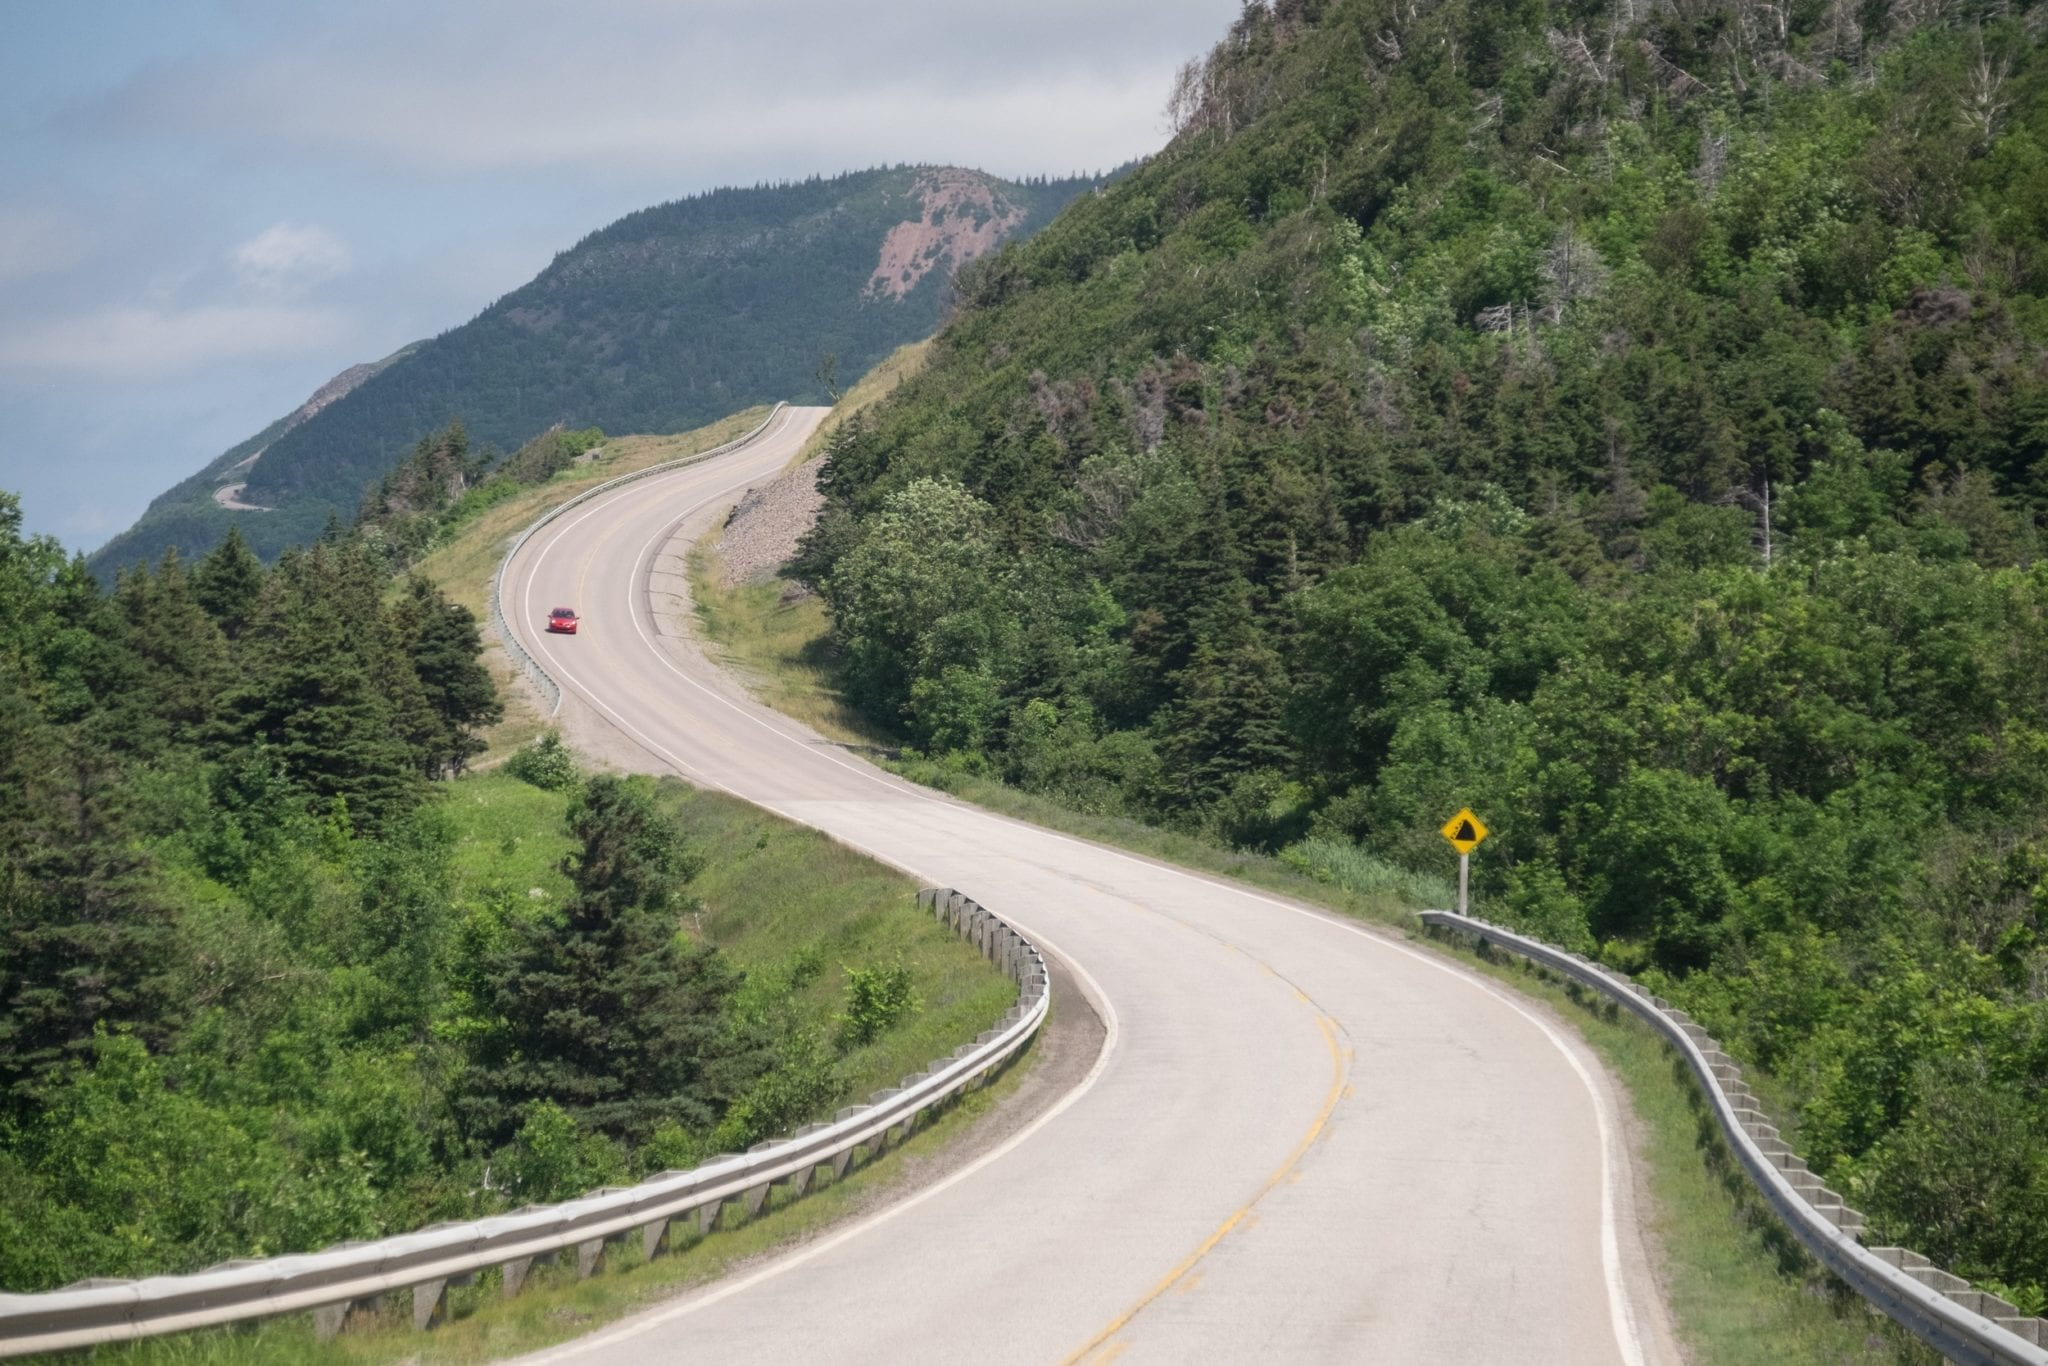 A curvy road surrounded by forest in Cape Breton, Nova Scotia.